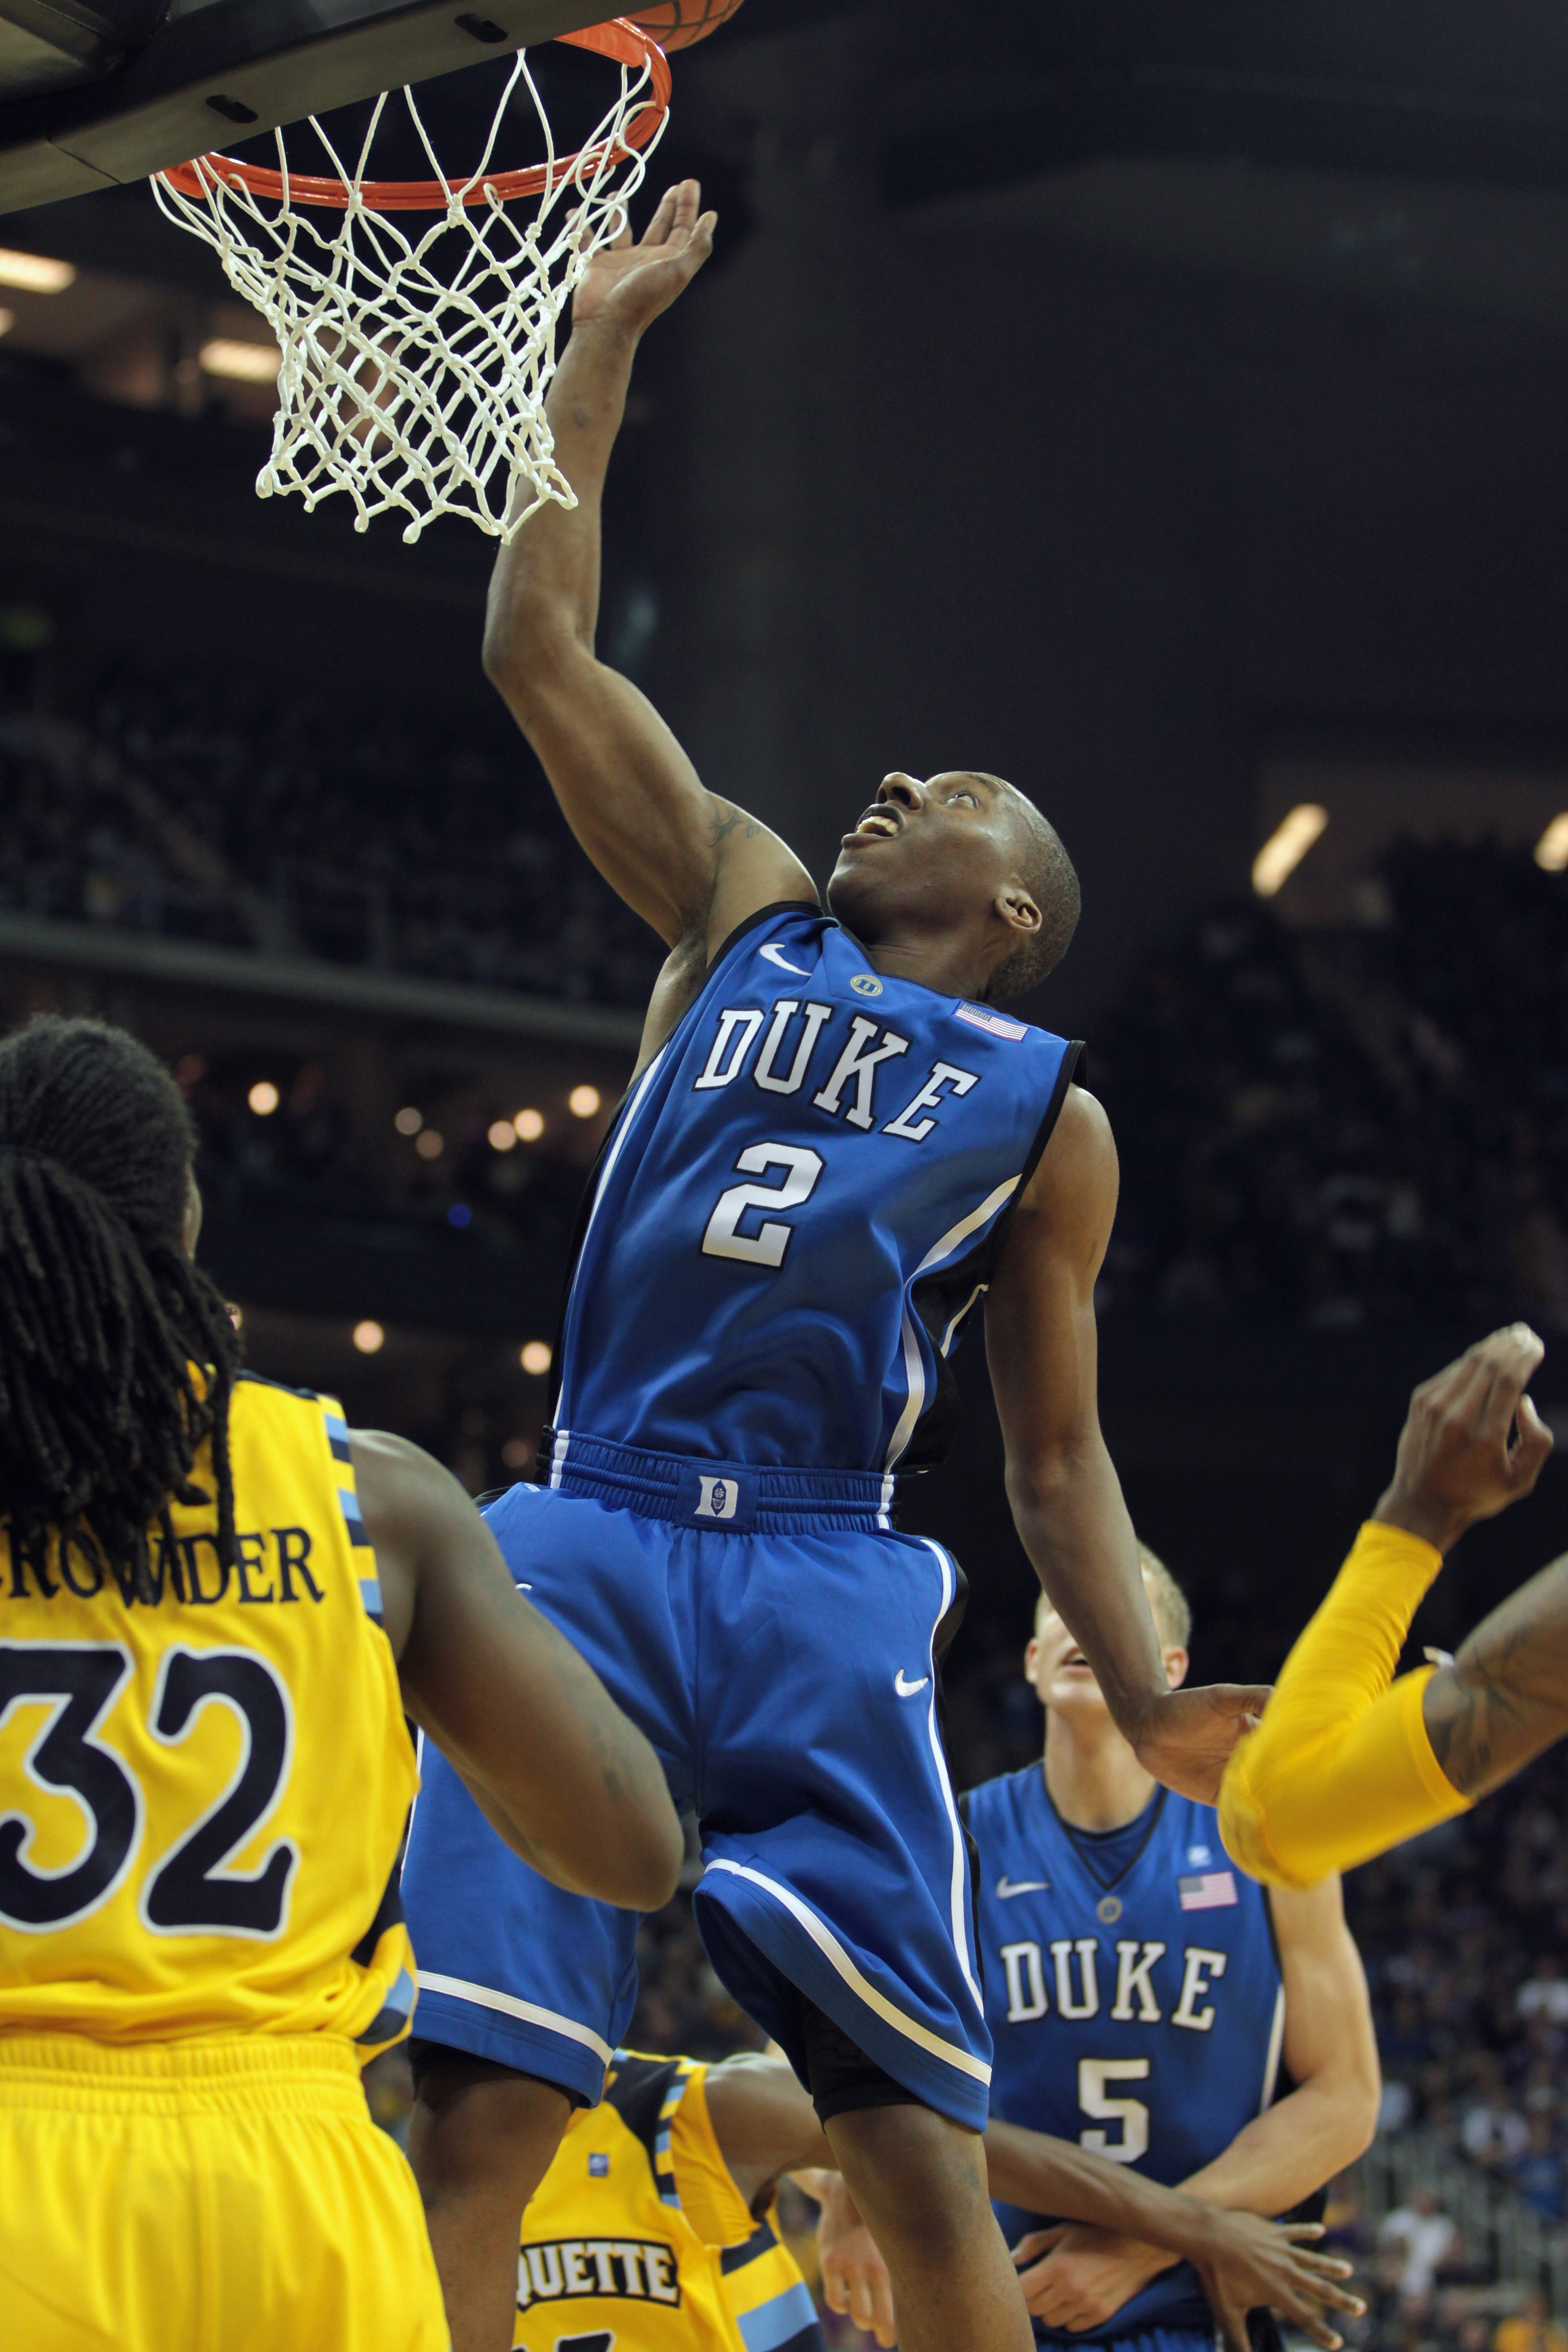 KANSAS CITY, MO - NOVEMBER 22:  Nolan Smith #2 of the Duke Blue Devils in action during the CBE Classic game against the Marquette Golden Eagles on November 22, 2010 at the Sprint Center in Kansas City, Missouri.  (Photo by Jamie Squire/Getty Images)